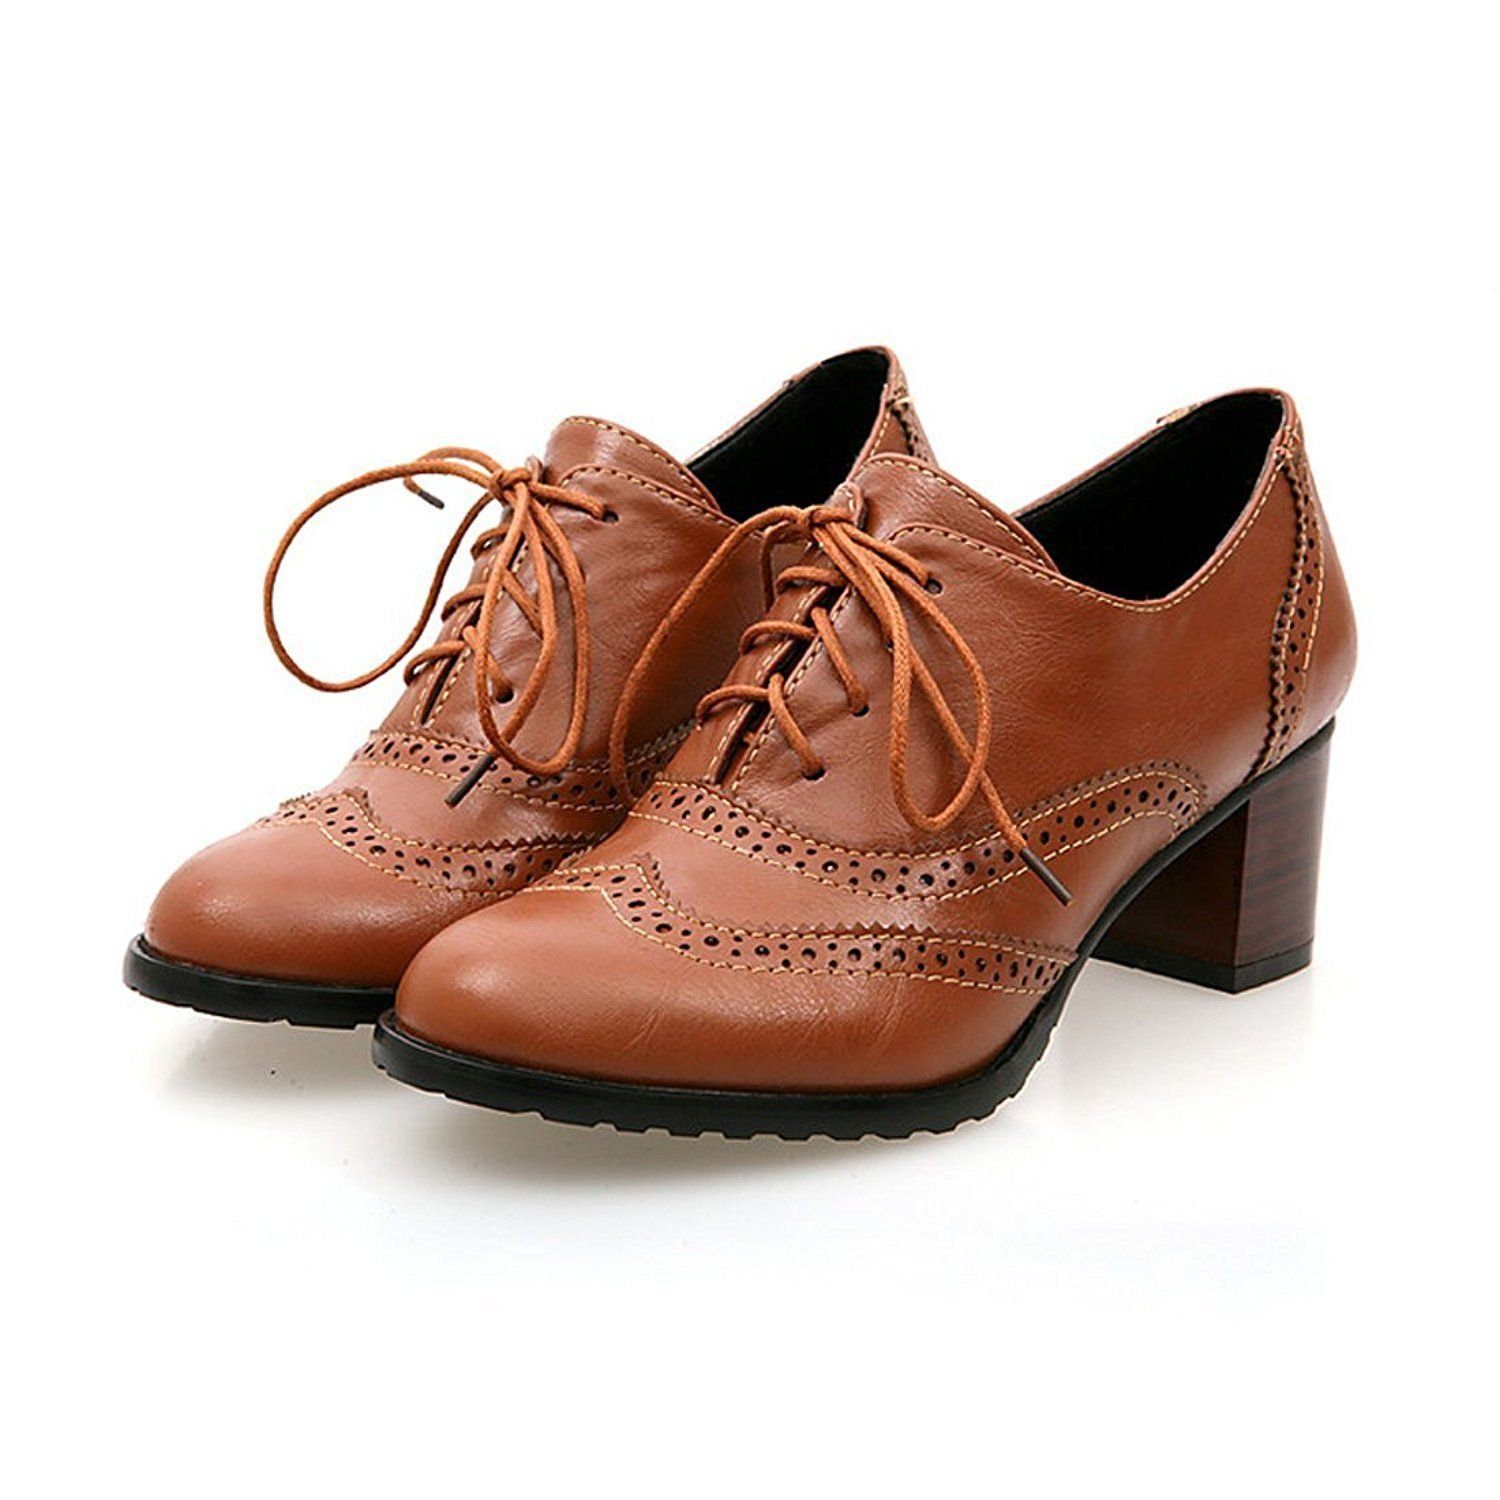 England Brogue Shoe Womens Laceup Mid Heel Wingtip Oxfords Vintage PU  Leather Shoes